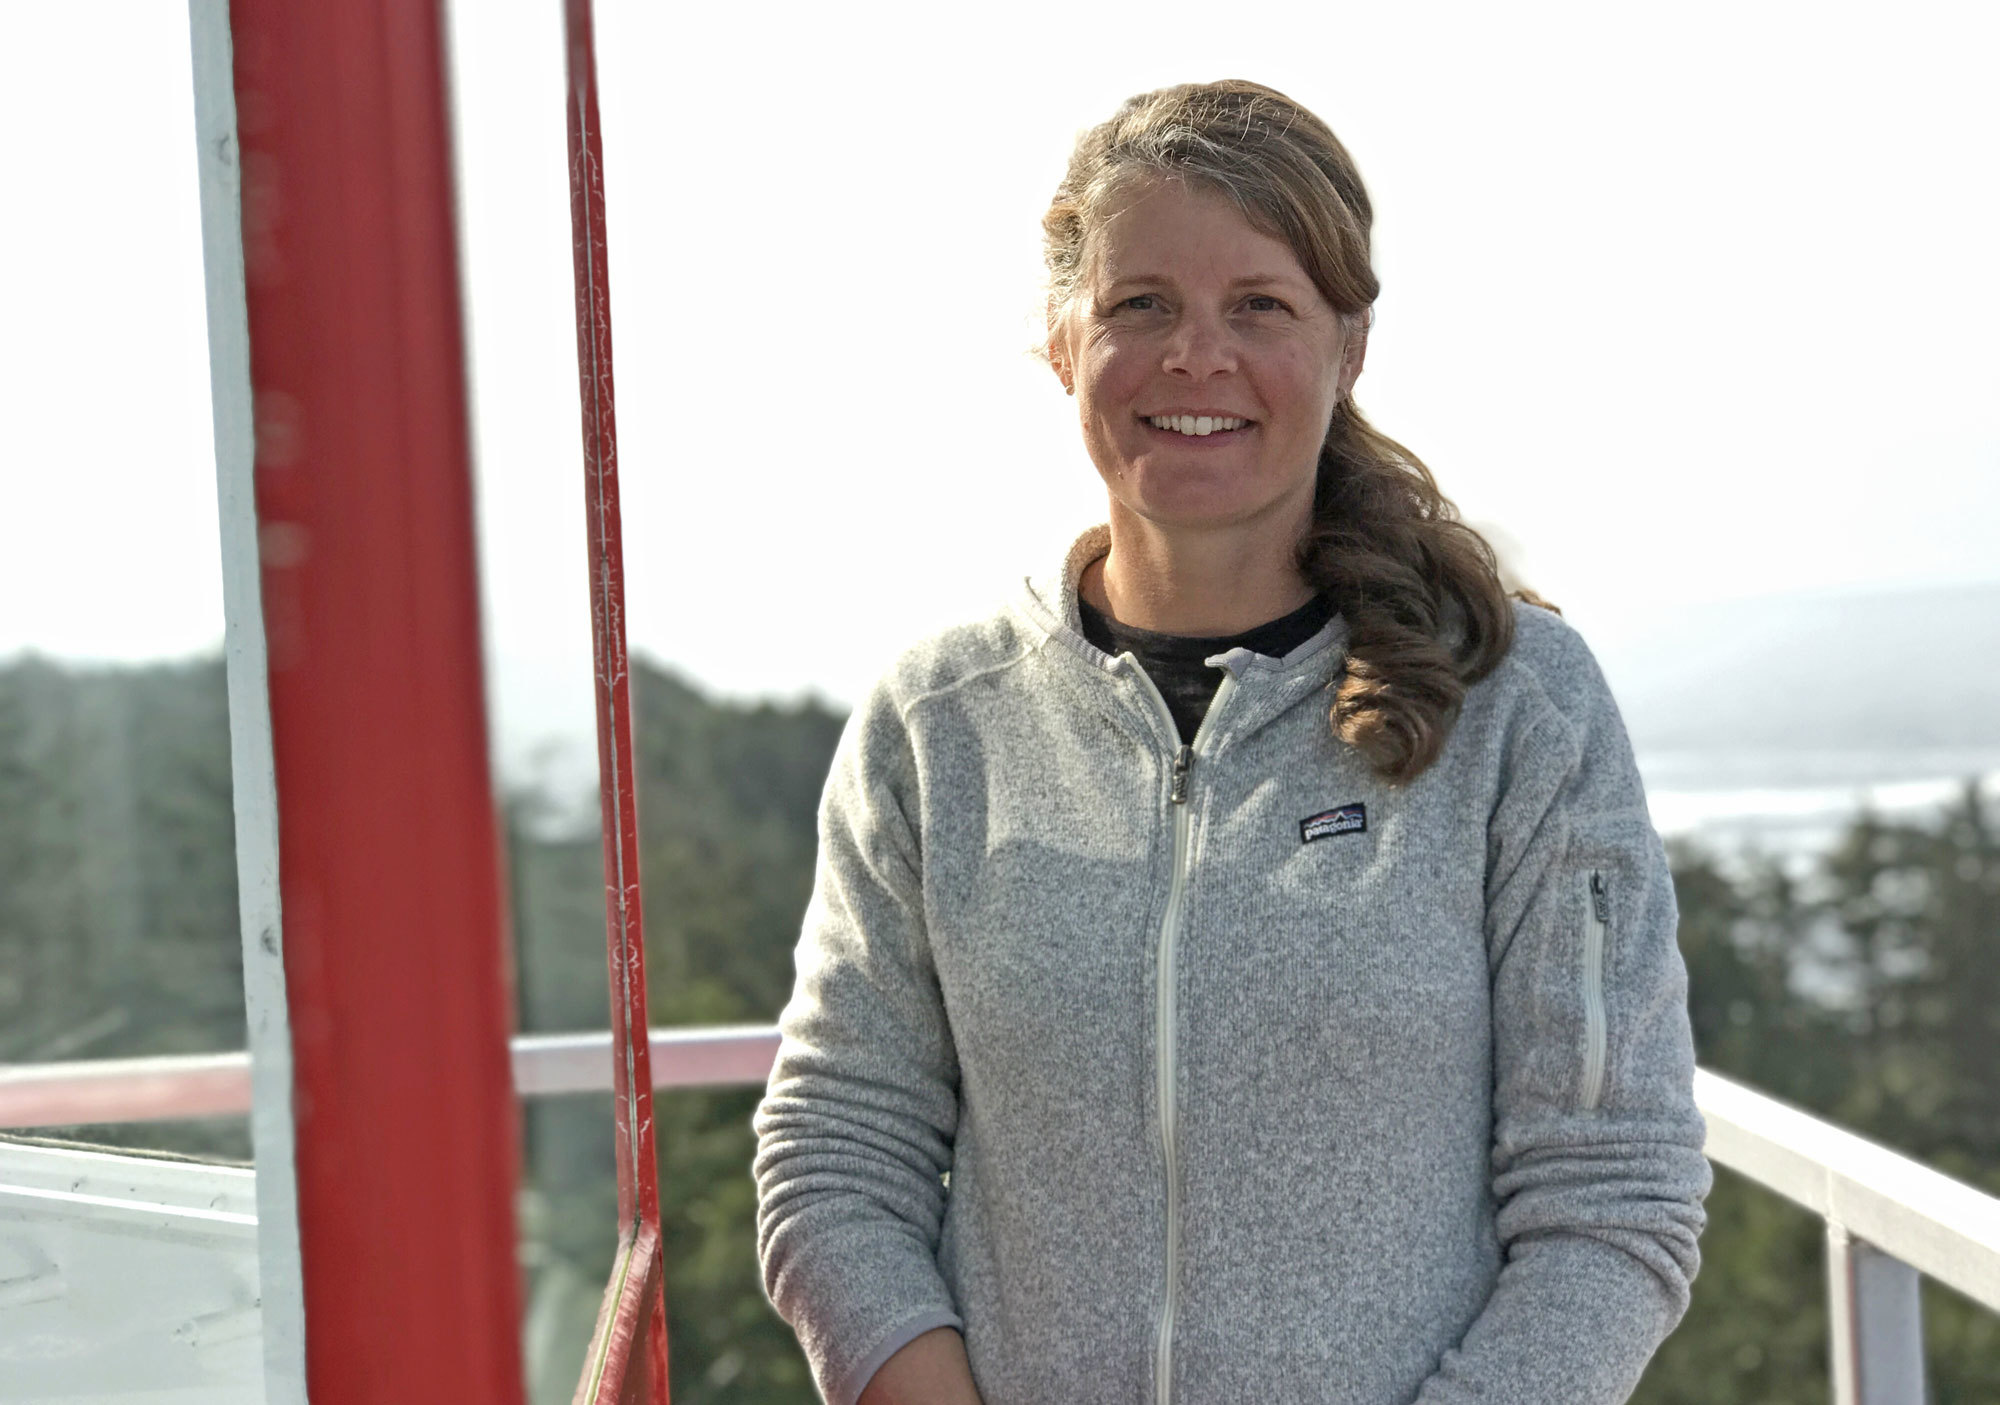 Karen Zacharuk has been the lightkeeper at Cape Beale for 12 years. (Megan Thomas/CBC)